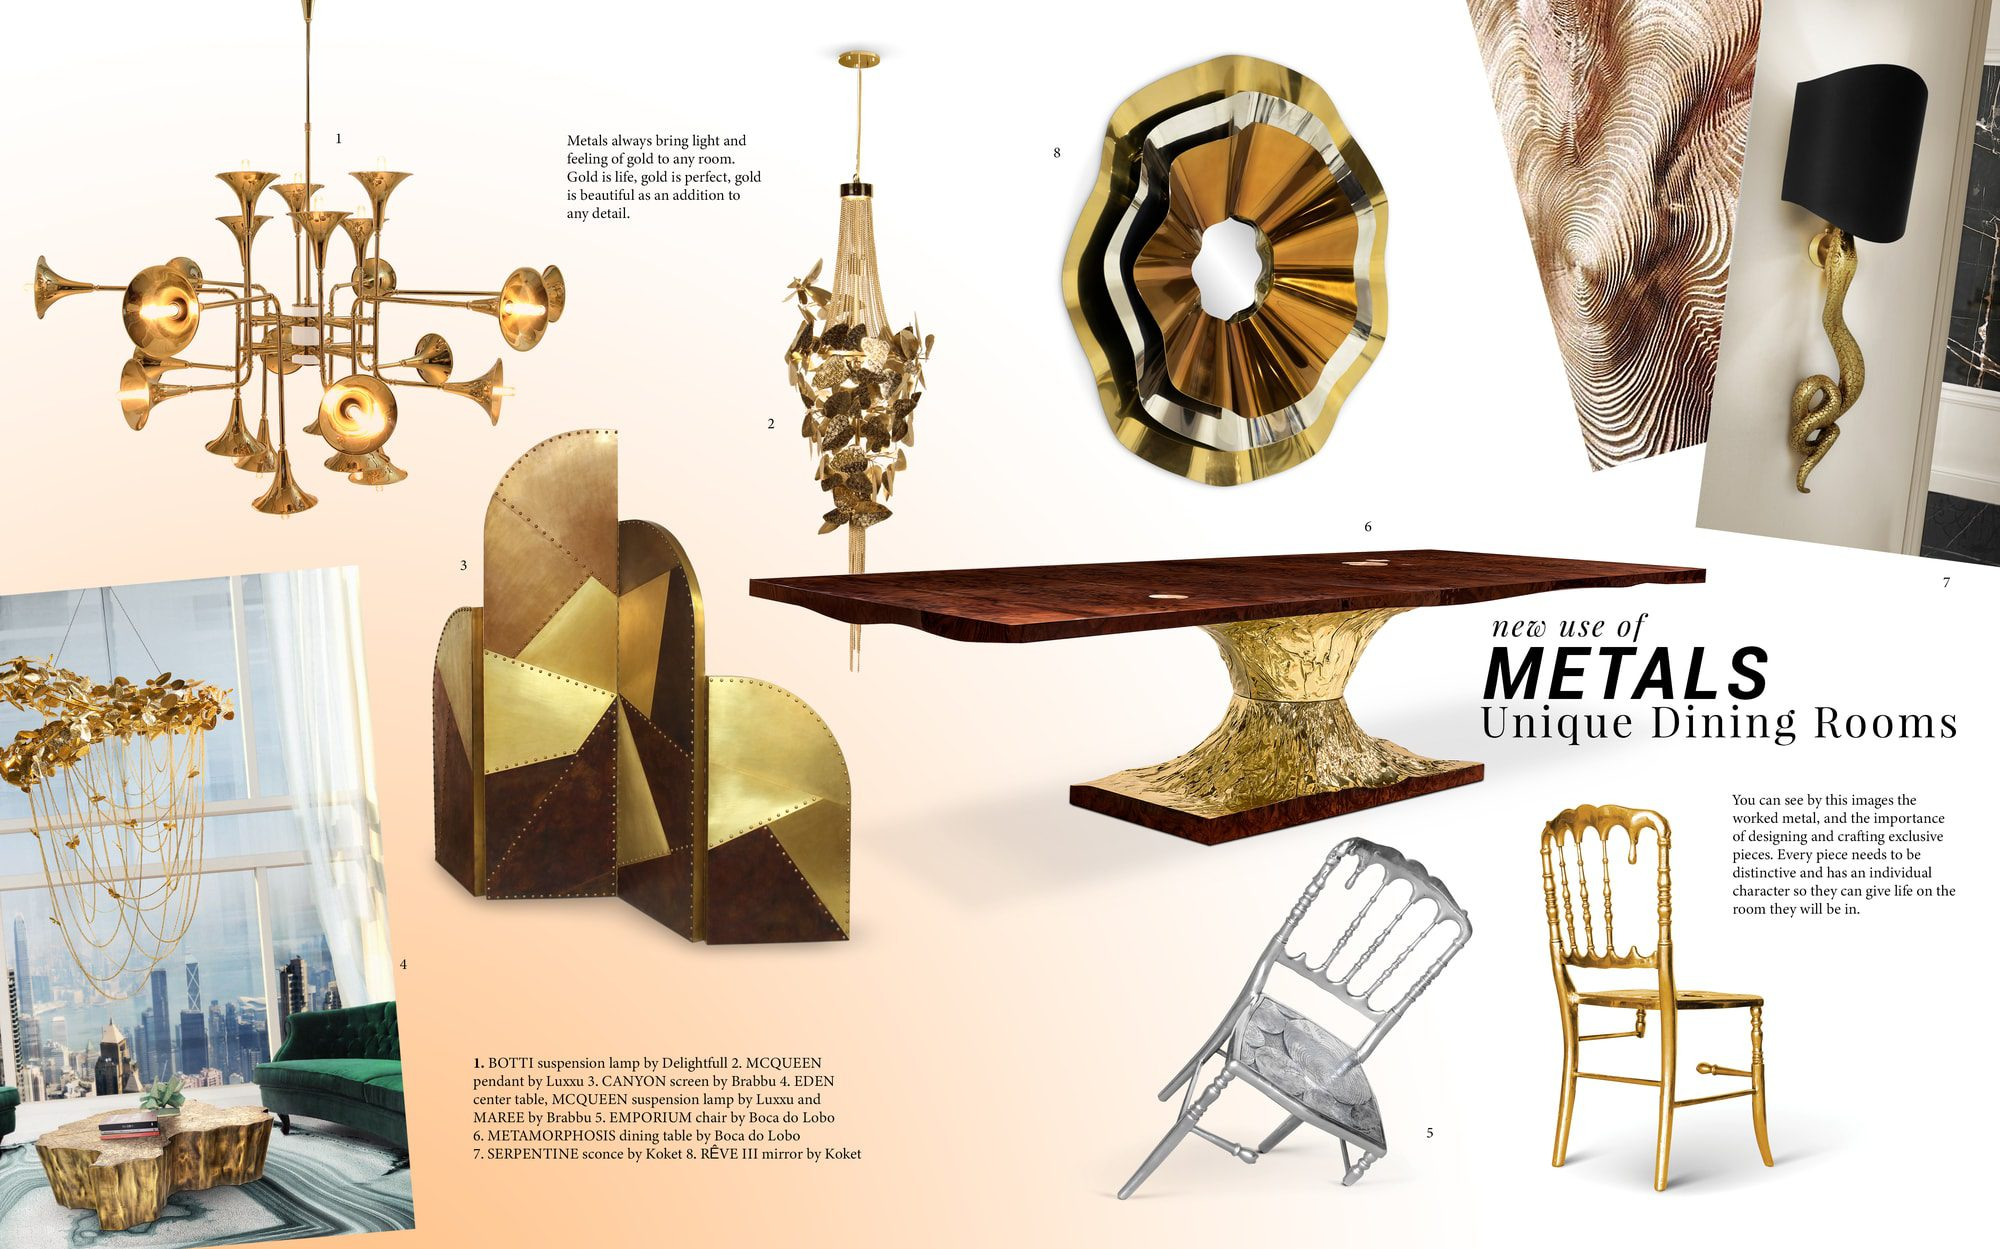 Dining Room Trends: New Use Of Metals gold Gold lighting from the most luxurious brands moodboard trends 2019 metals gold Gold lighting from the most luxurious brands moodboard trends 2019 metals